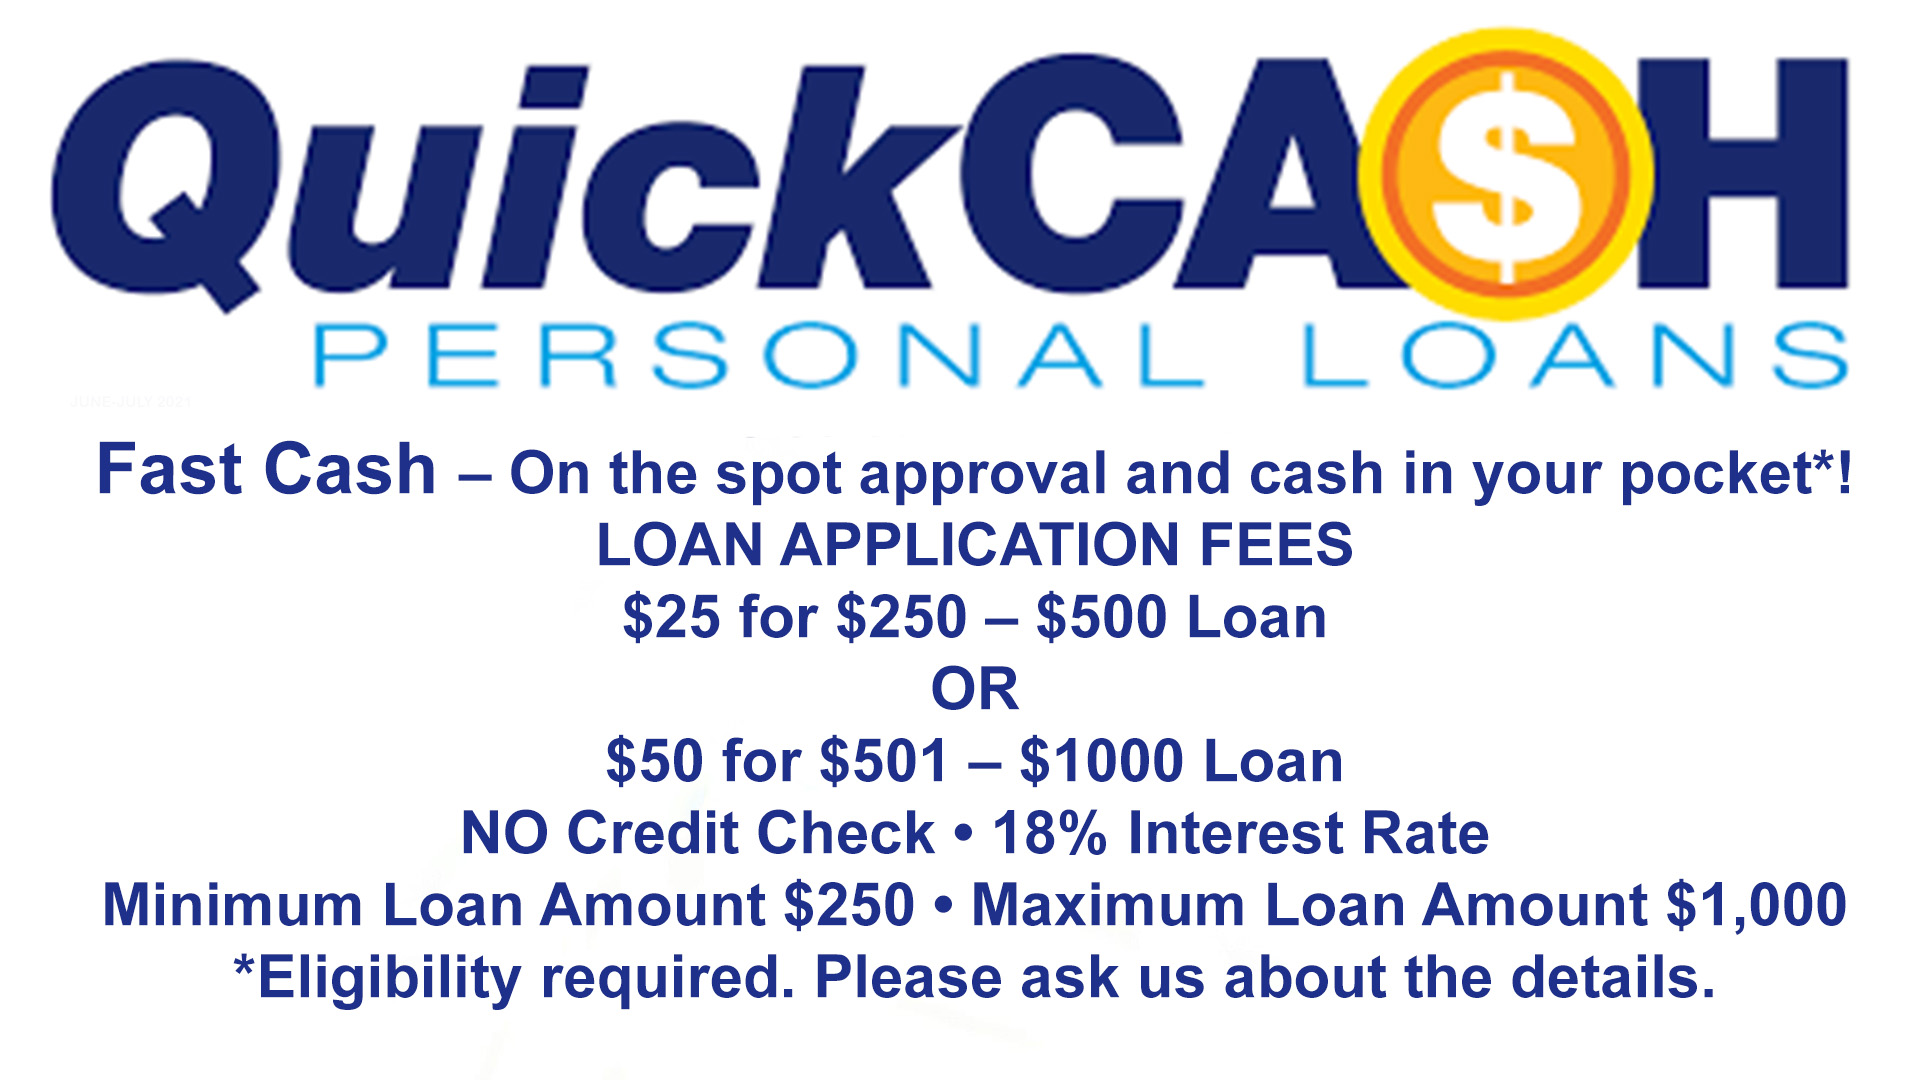 Quick Cash Personal Loan. Application fee of $25-$50. No credit check. 18% interest rate. Minimum loan amount $250 up to $1,000.00. Eligibility required. Please ask us for all of the details by calling 928-753-8000. Thank you.